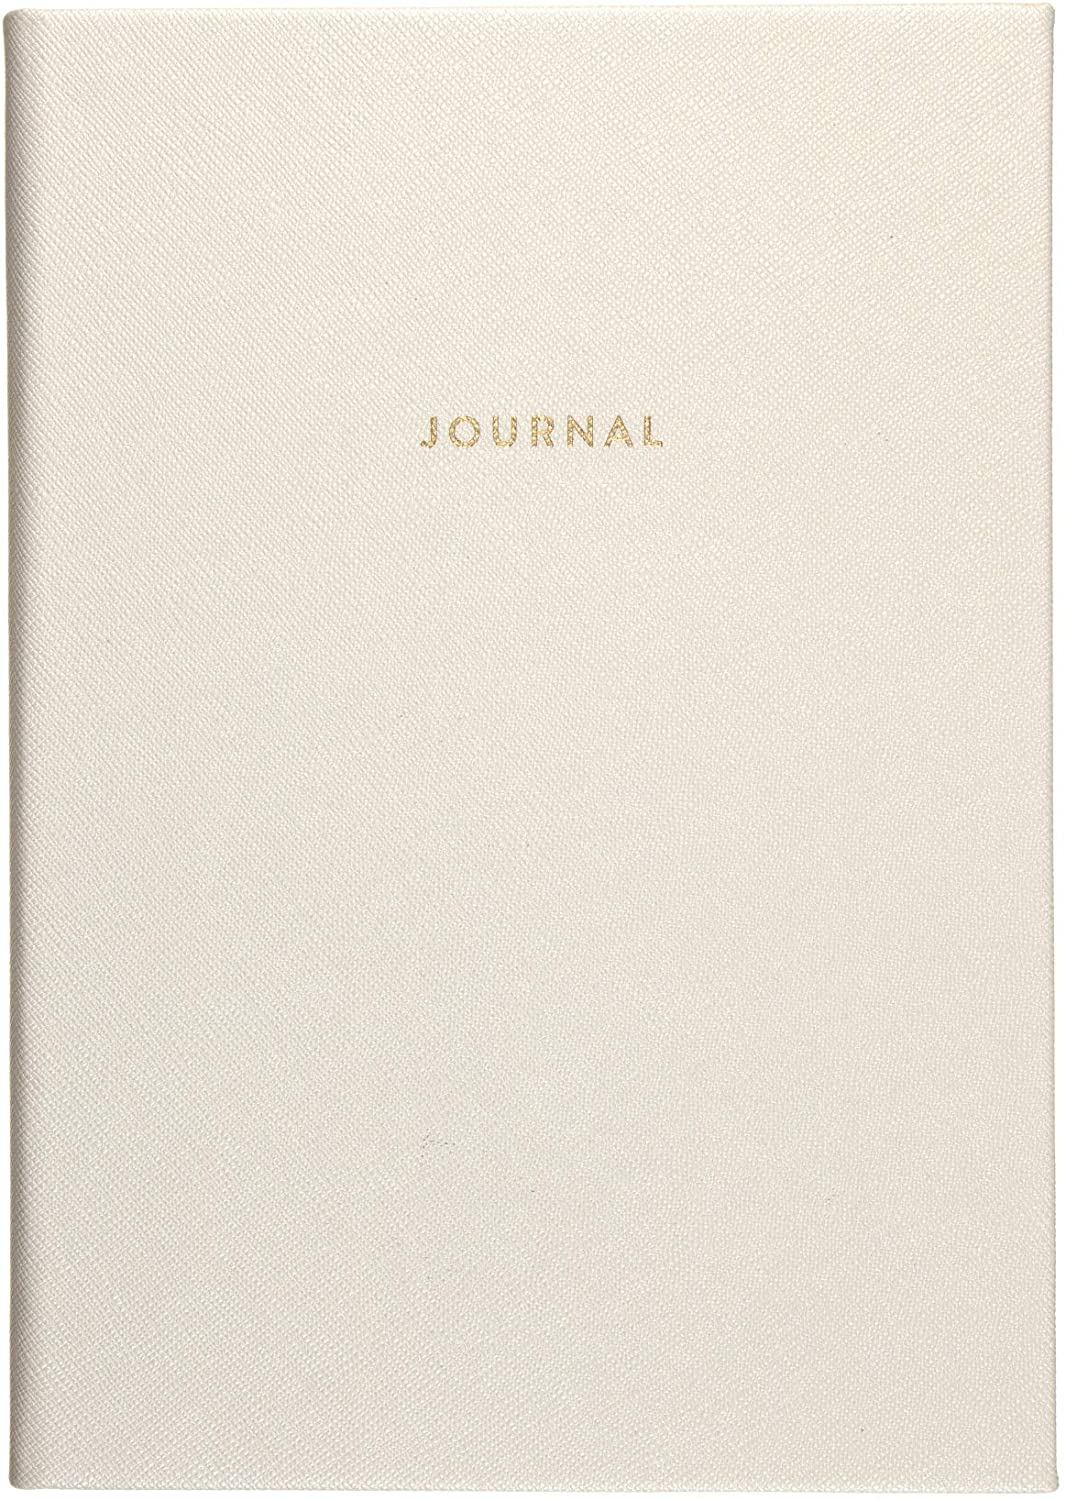 Eccolo Style Journal, 256 Lined Pages Notebook, White Saffiano, 6x8